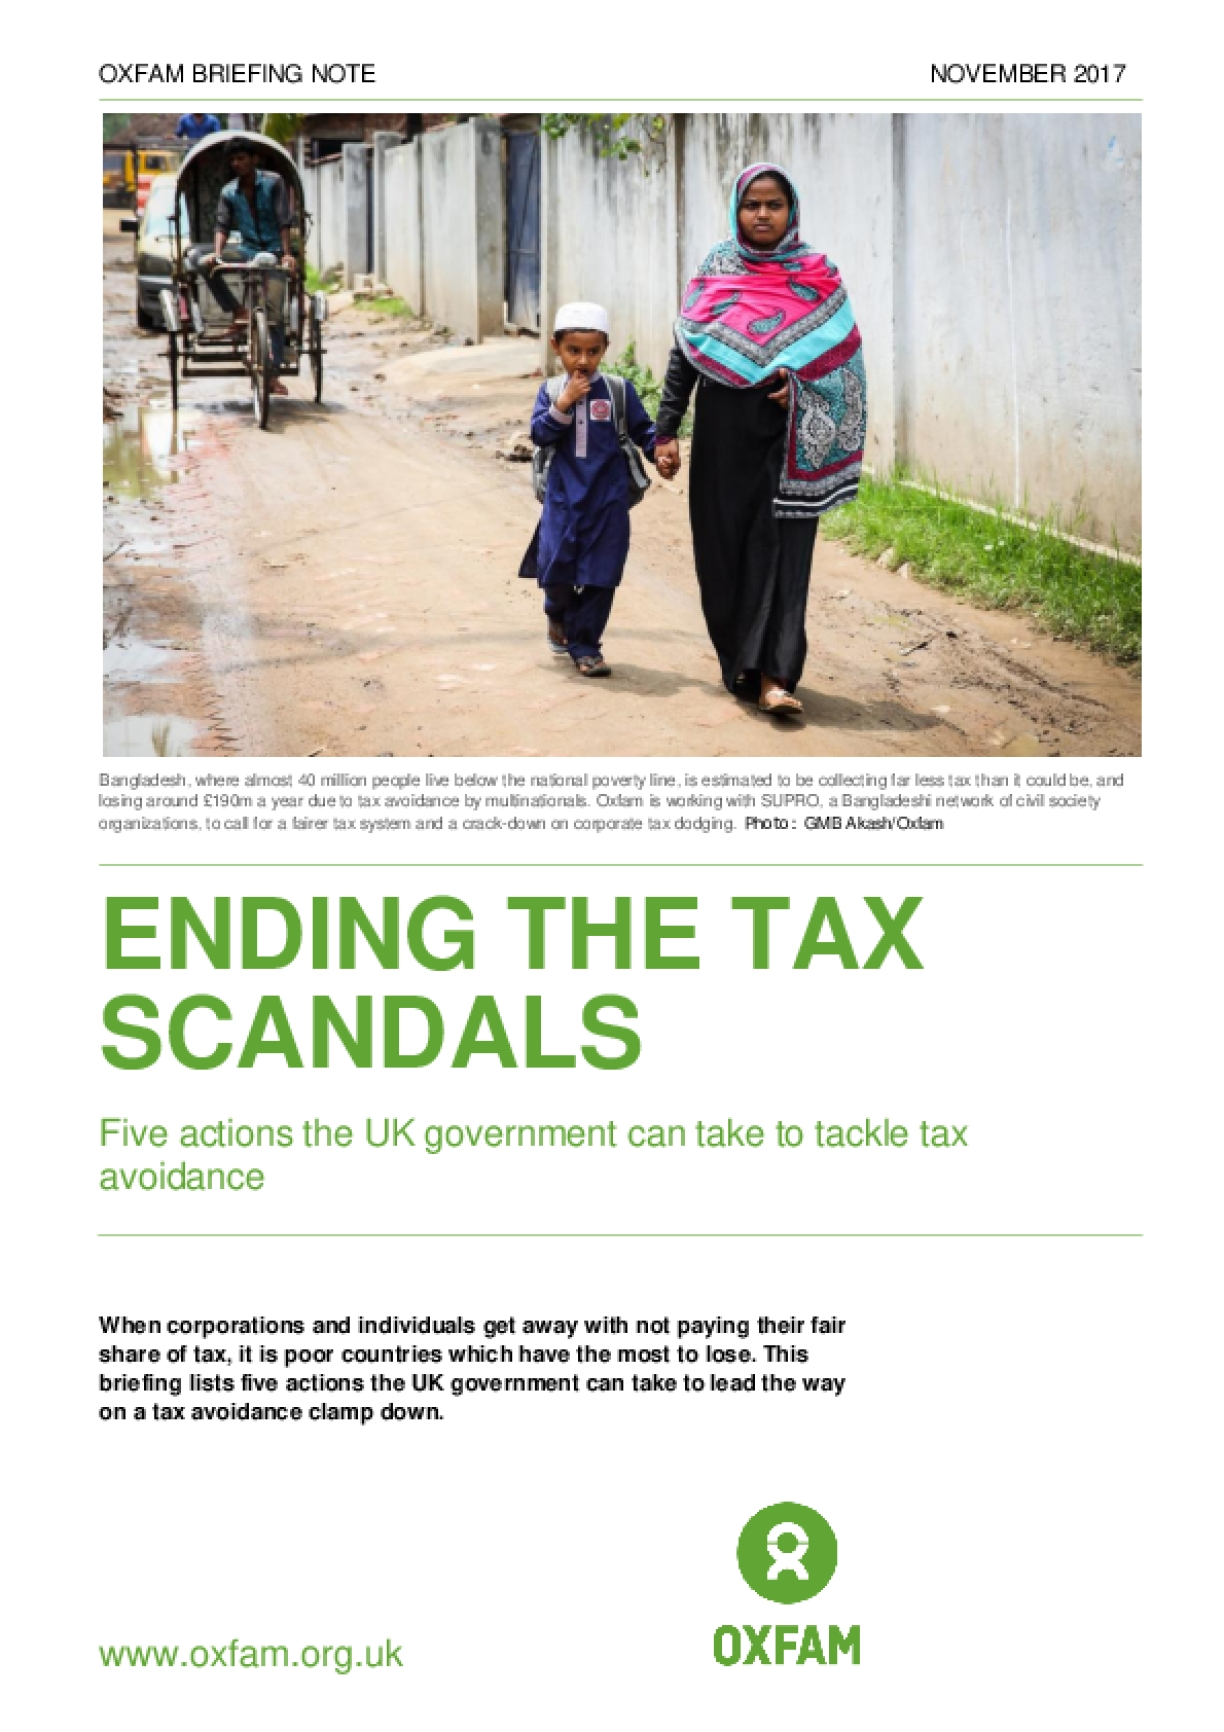 Ending the Tax Scandals: Five Actions the UK Government Can Take to Tackle Tax Avoidance